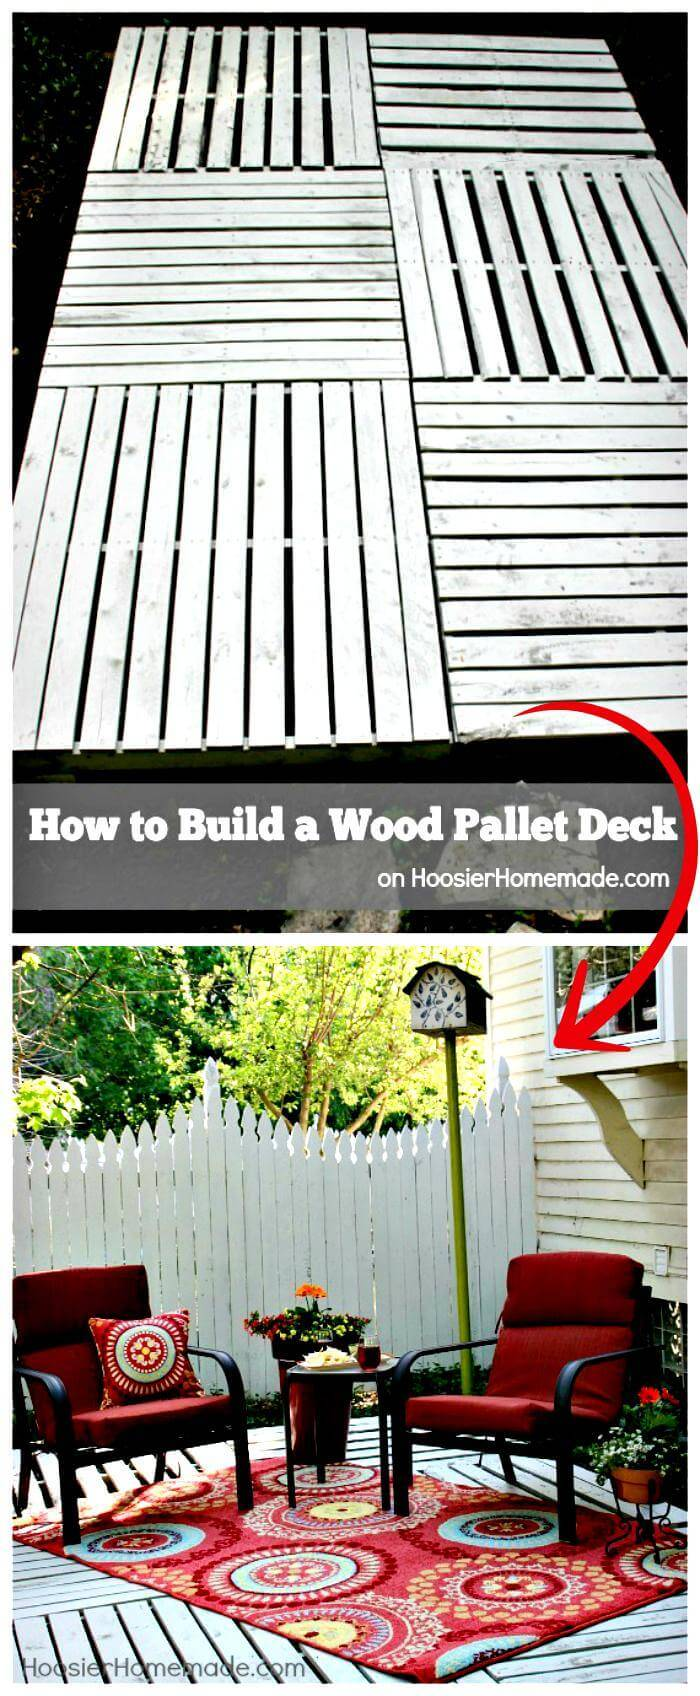 DIY Wood Pallet Deck Tutorial